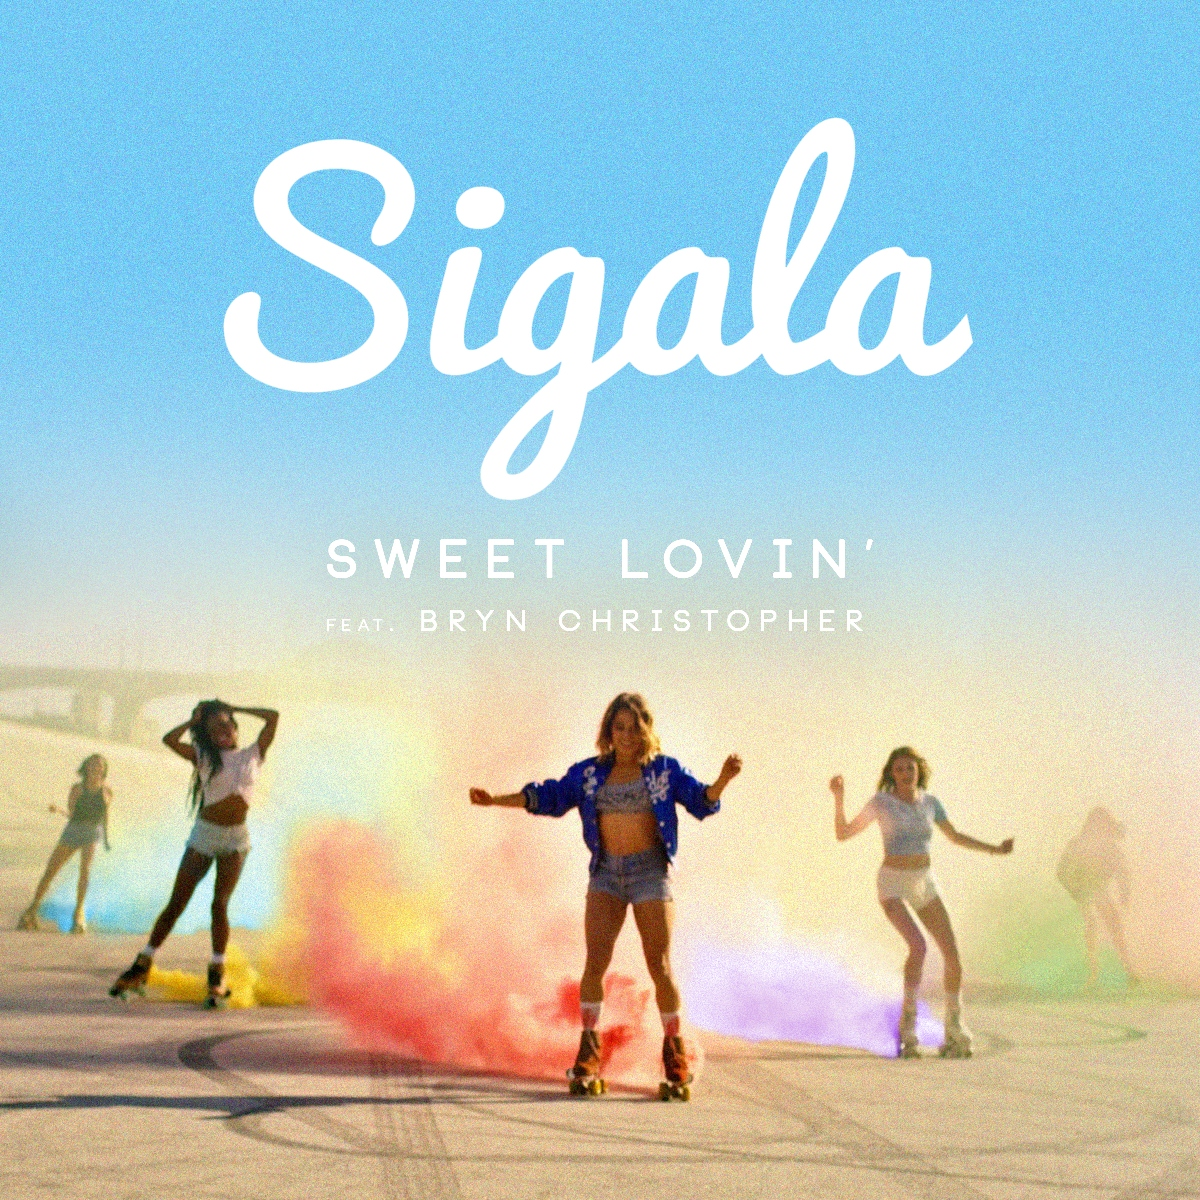 Cover: SIGALA FEAT. BRYN CHRISTOPHER, SWEET LOVIN